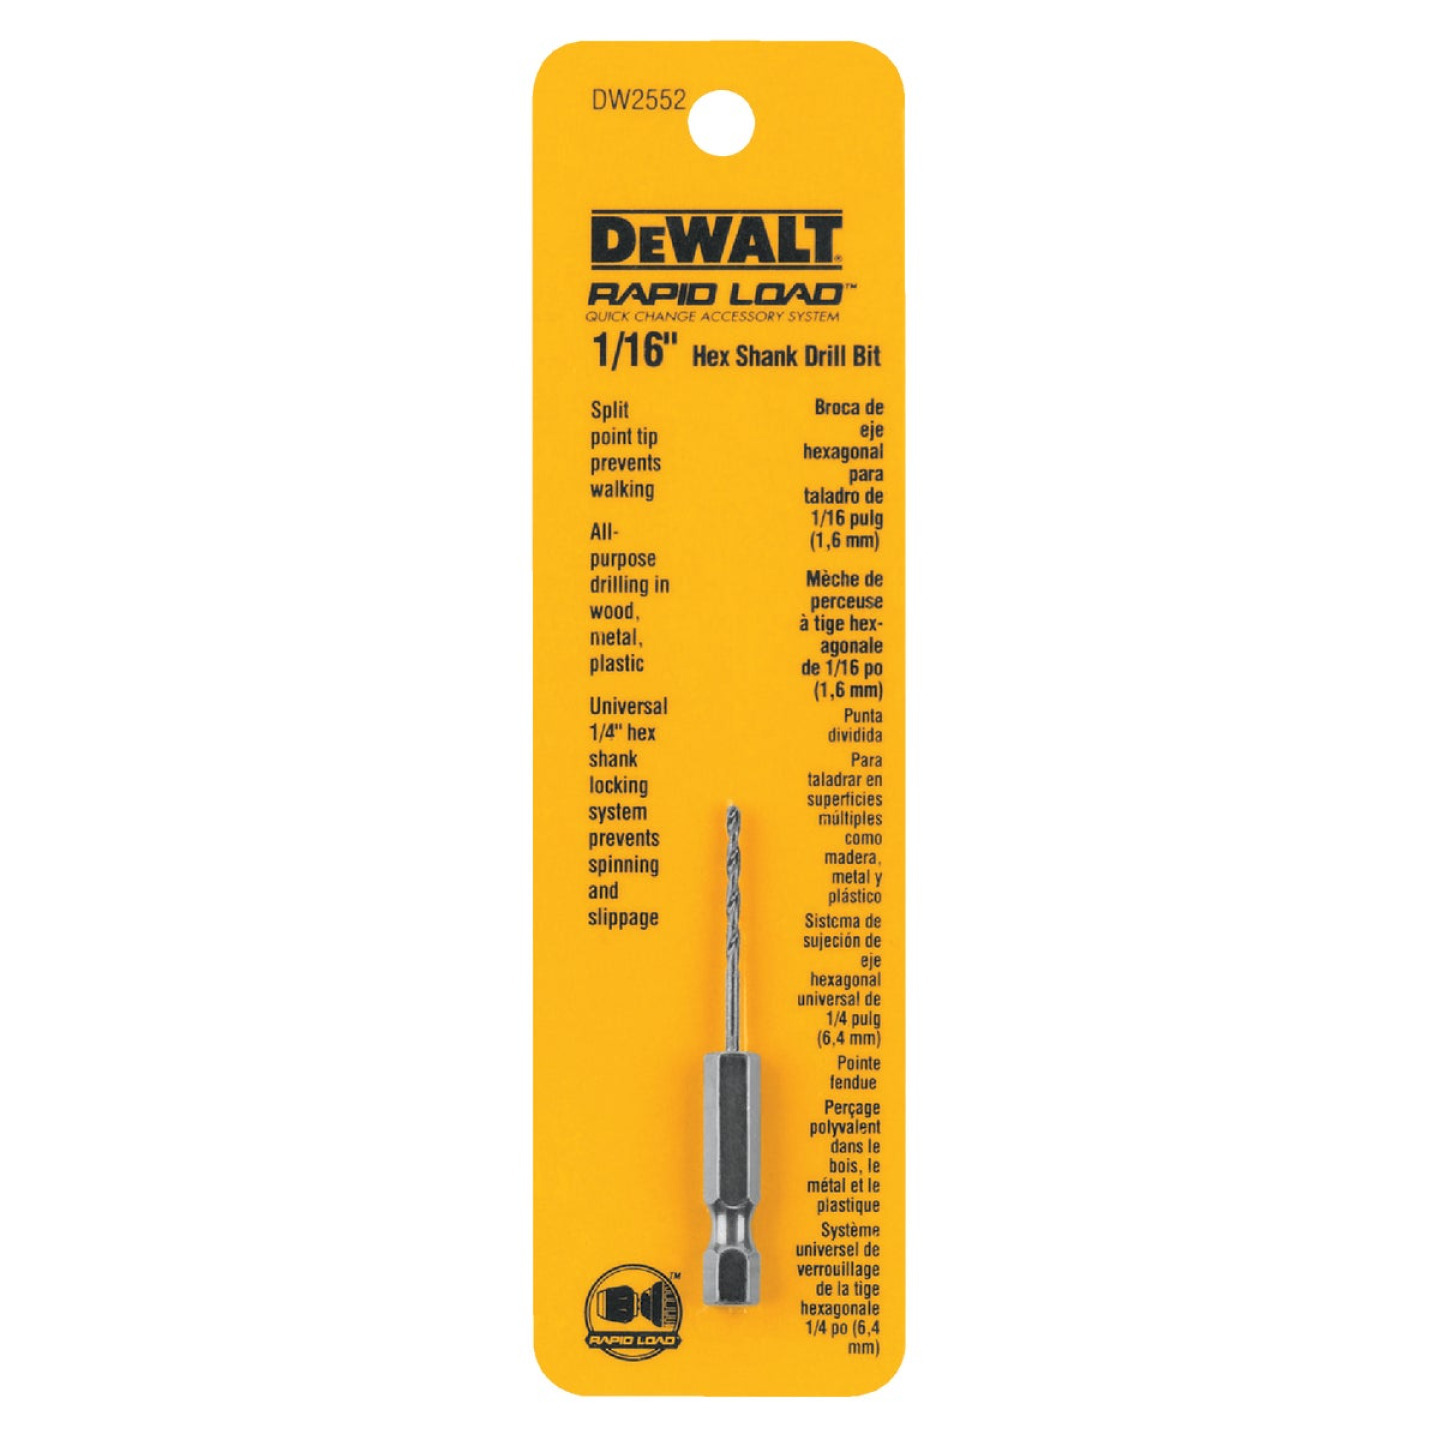 DeWalt Rapid Load 1/16 In. Black Oxide Hex Shank Drill Bit Image 1